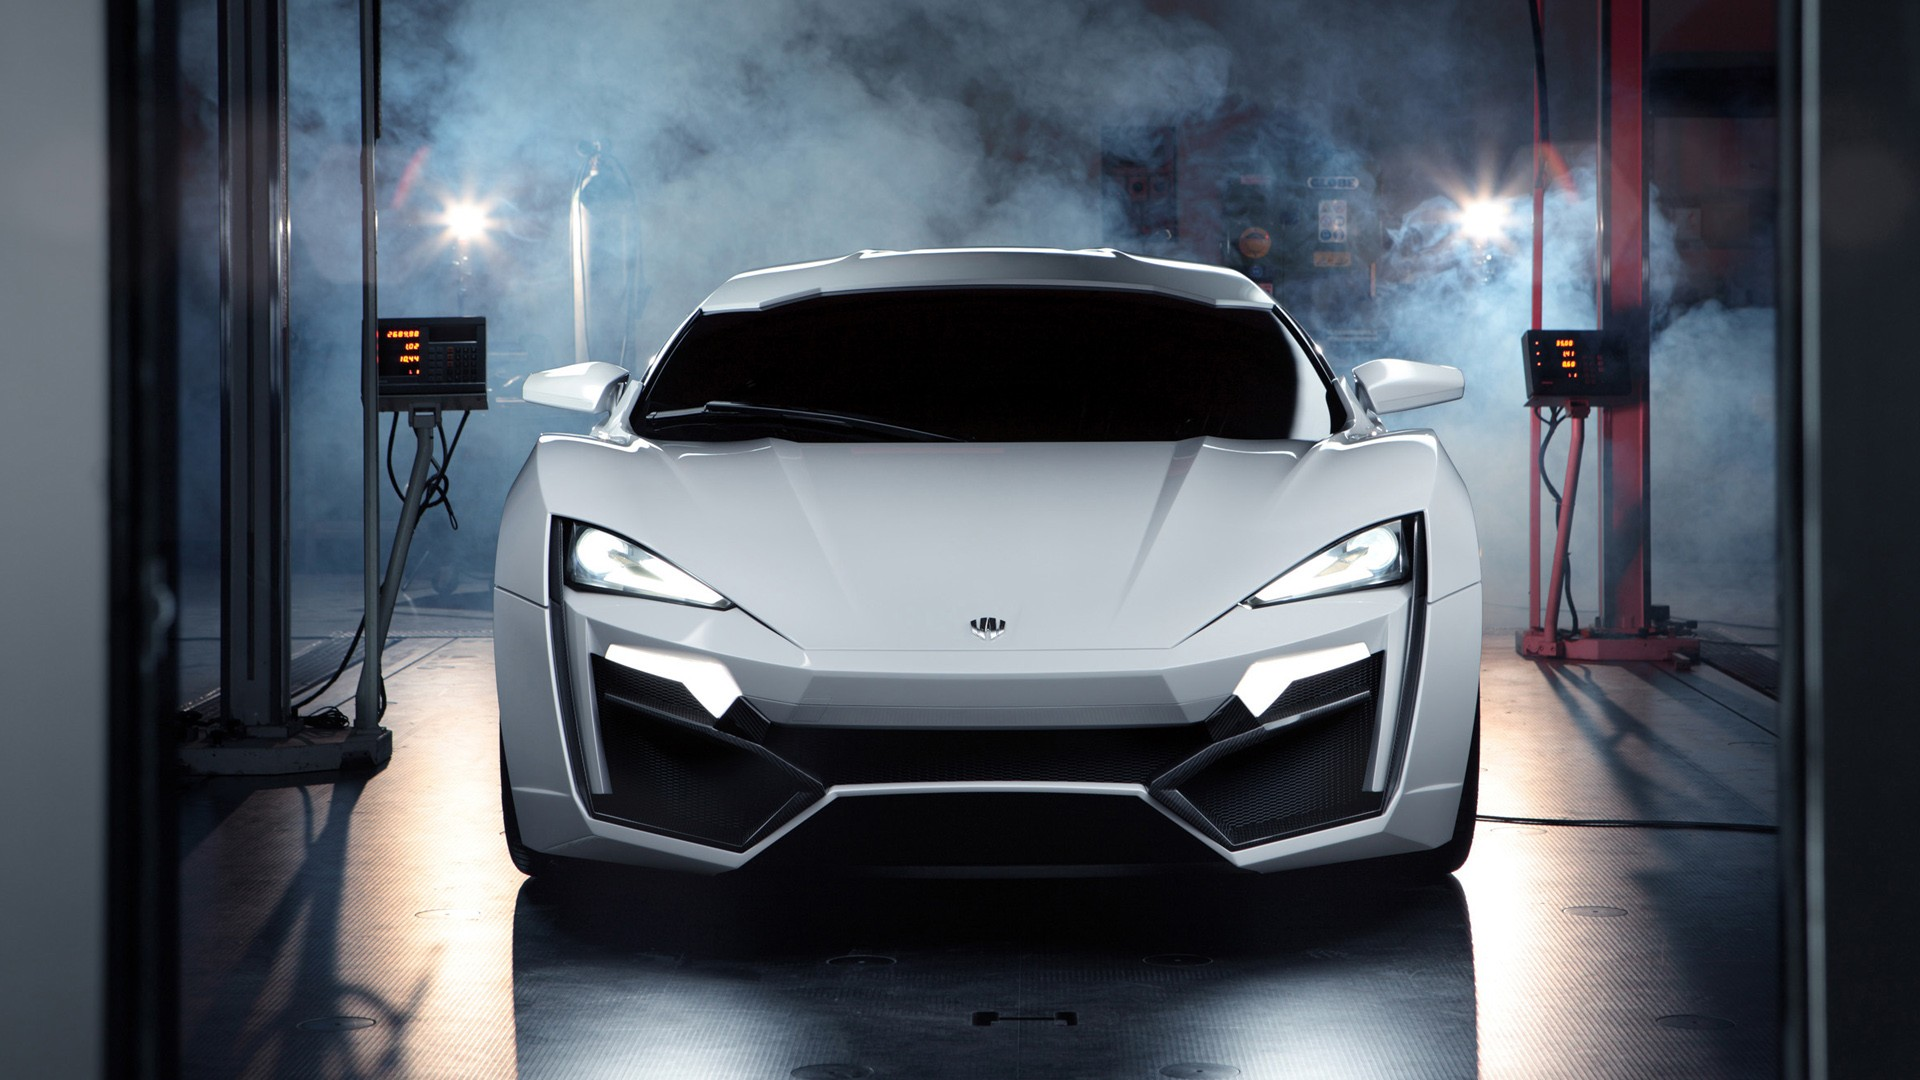 2013 w motors lykan hypersport 3 wallpaper hd car - Lykan hypersport wallpaper 1920x1080 ...